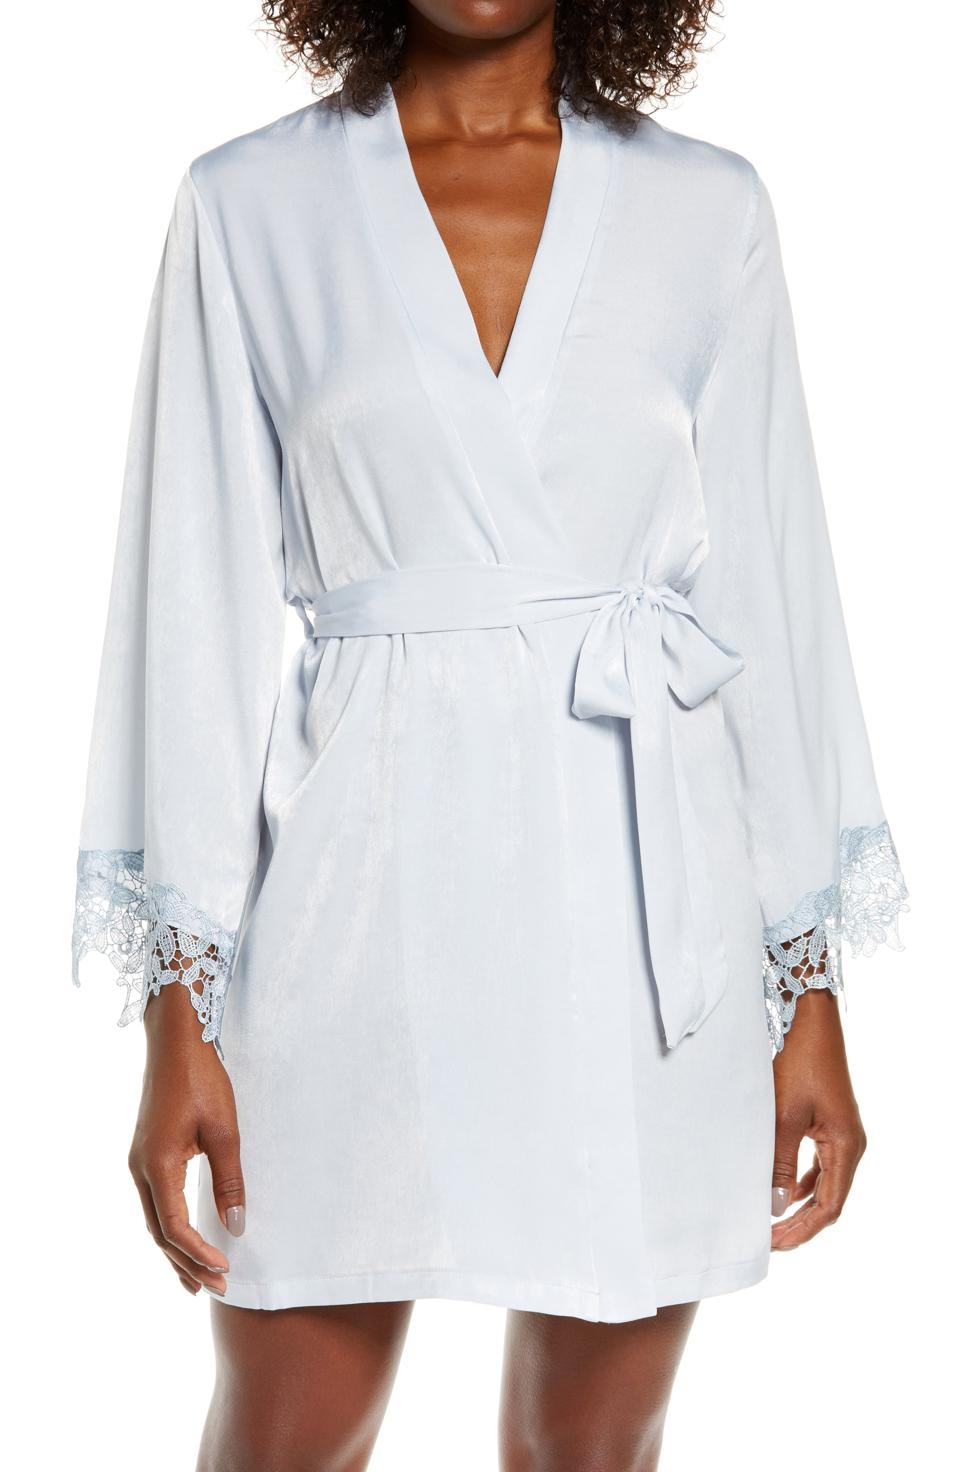 In Bloom by Jonquil Know a Secret Satin Wrap Robe